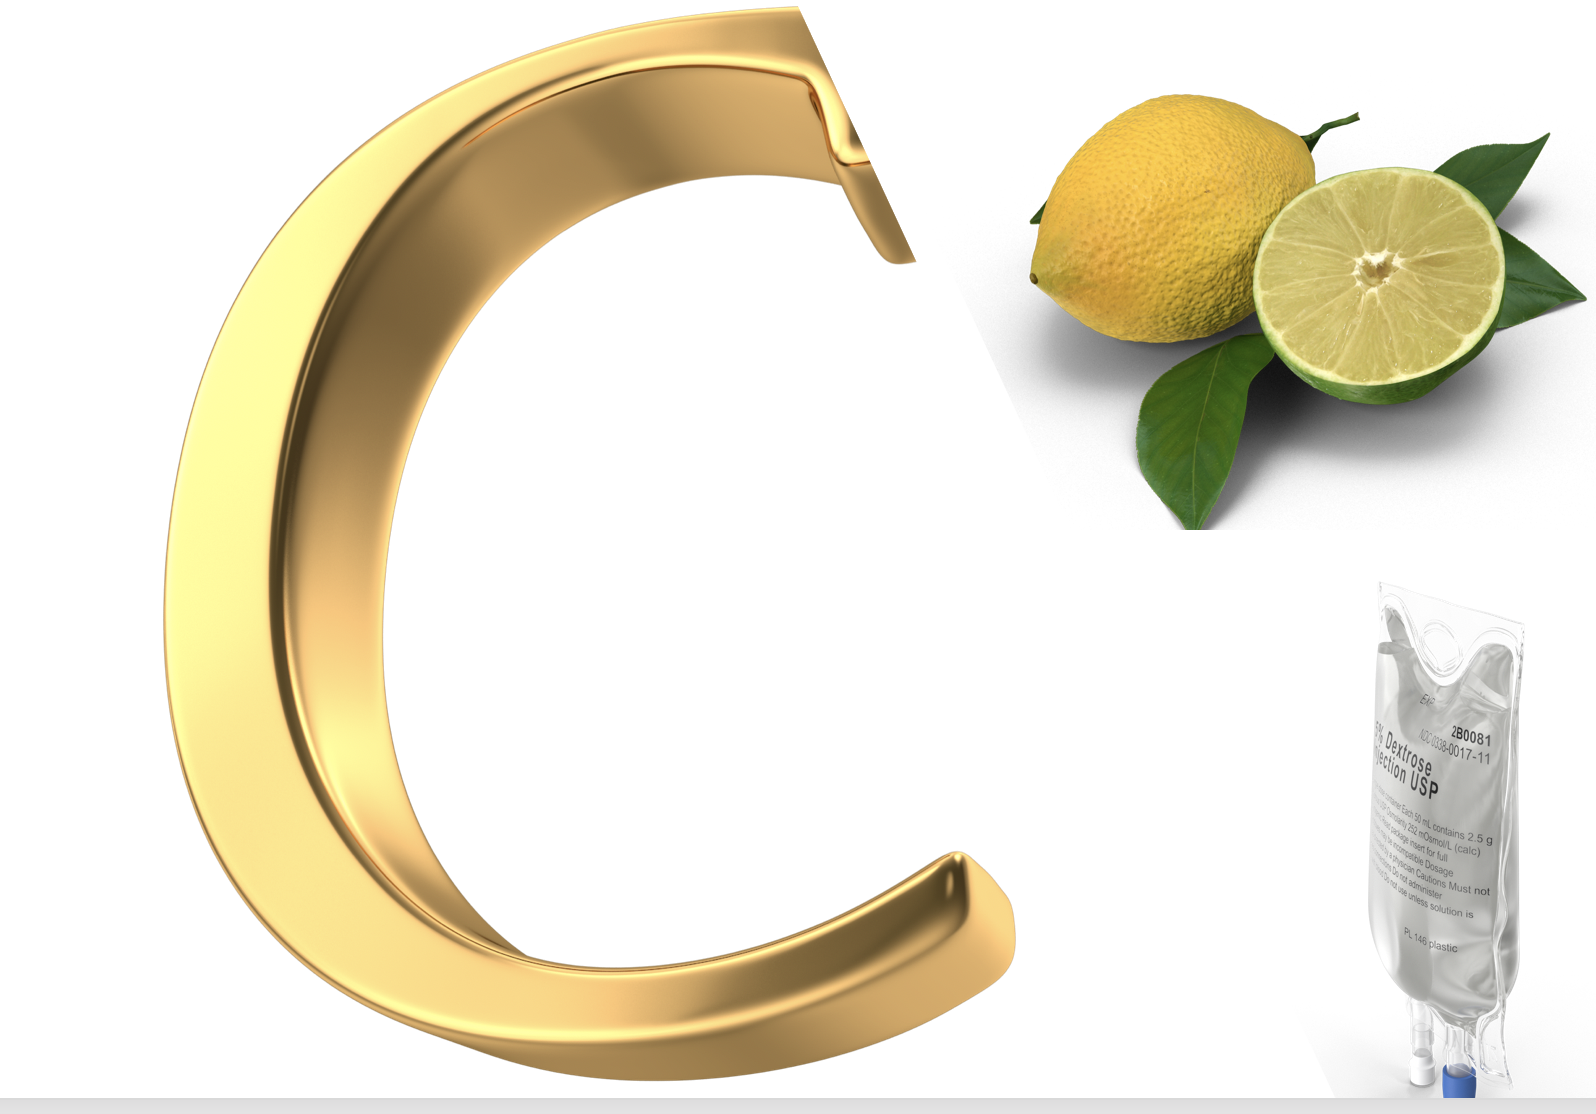 Lemon and lime is a good source of Vitamin C